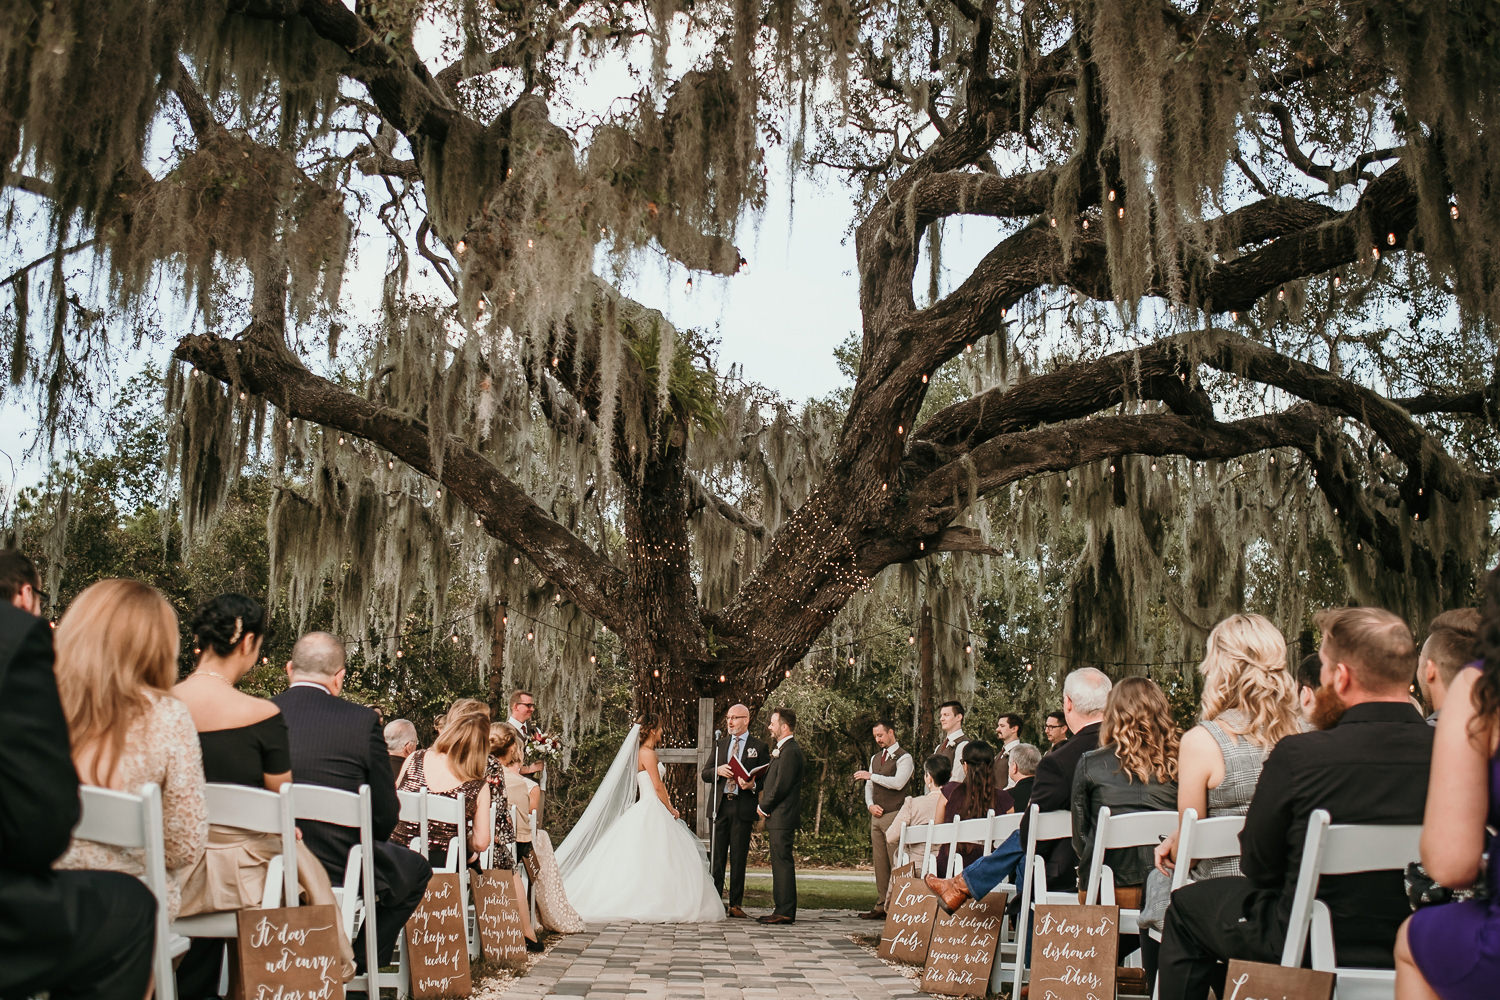 wide shot of ceremony site with a big tree in background